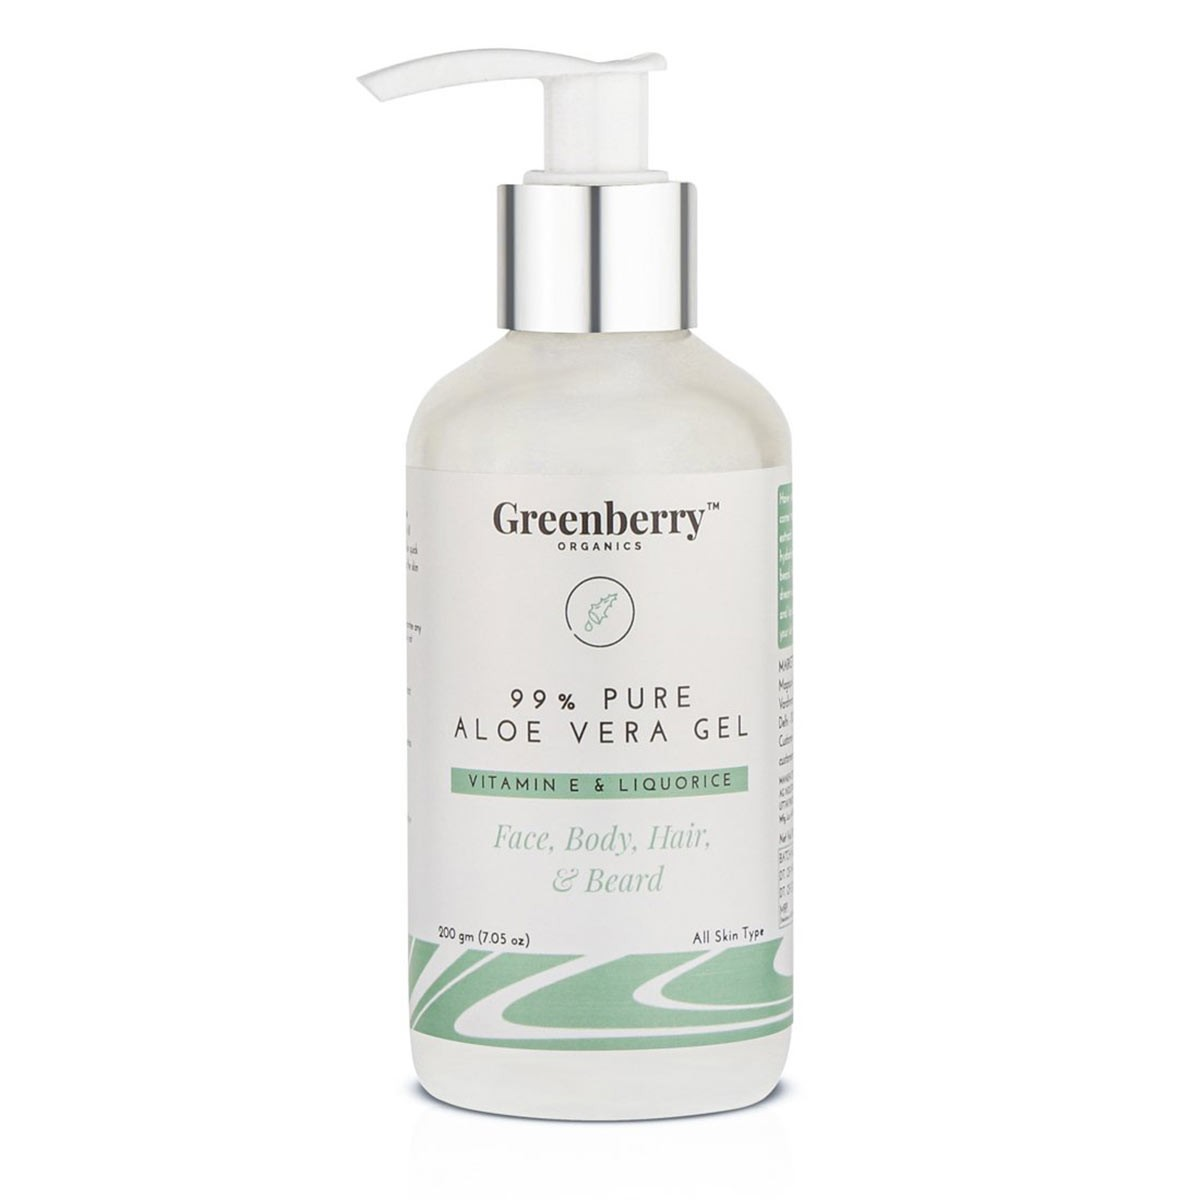 Greenberry Organics 99% Pure Aloe Vera Gel